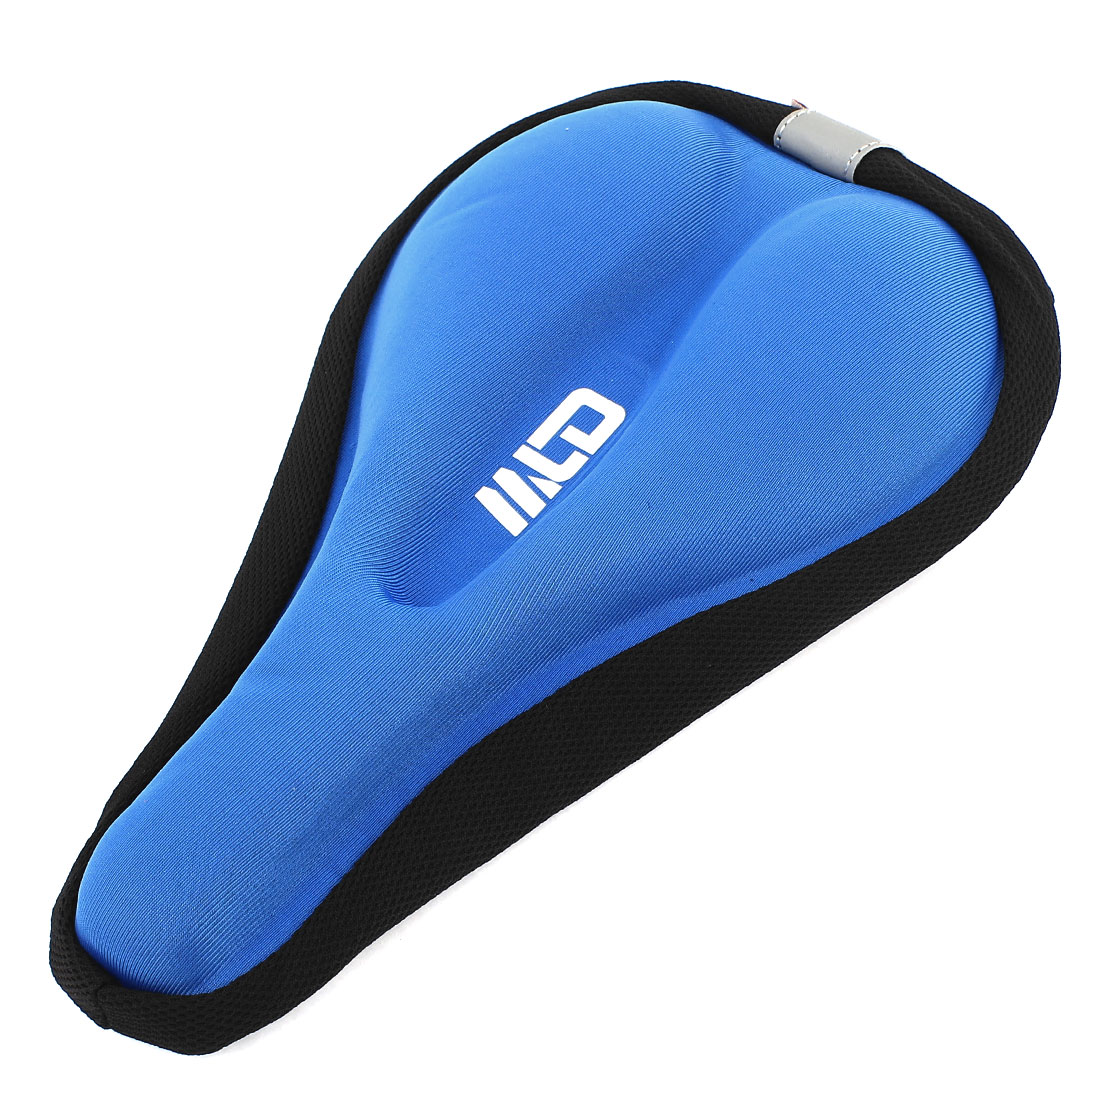 Bike Bicycle Cycle Soft Sponge Pad Cushion Cover Blue for Saddle Seat